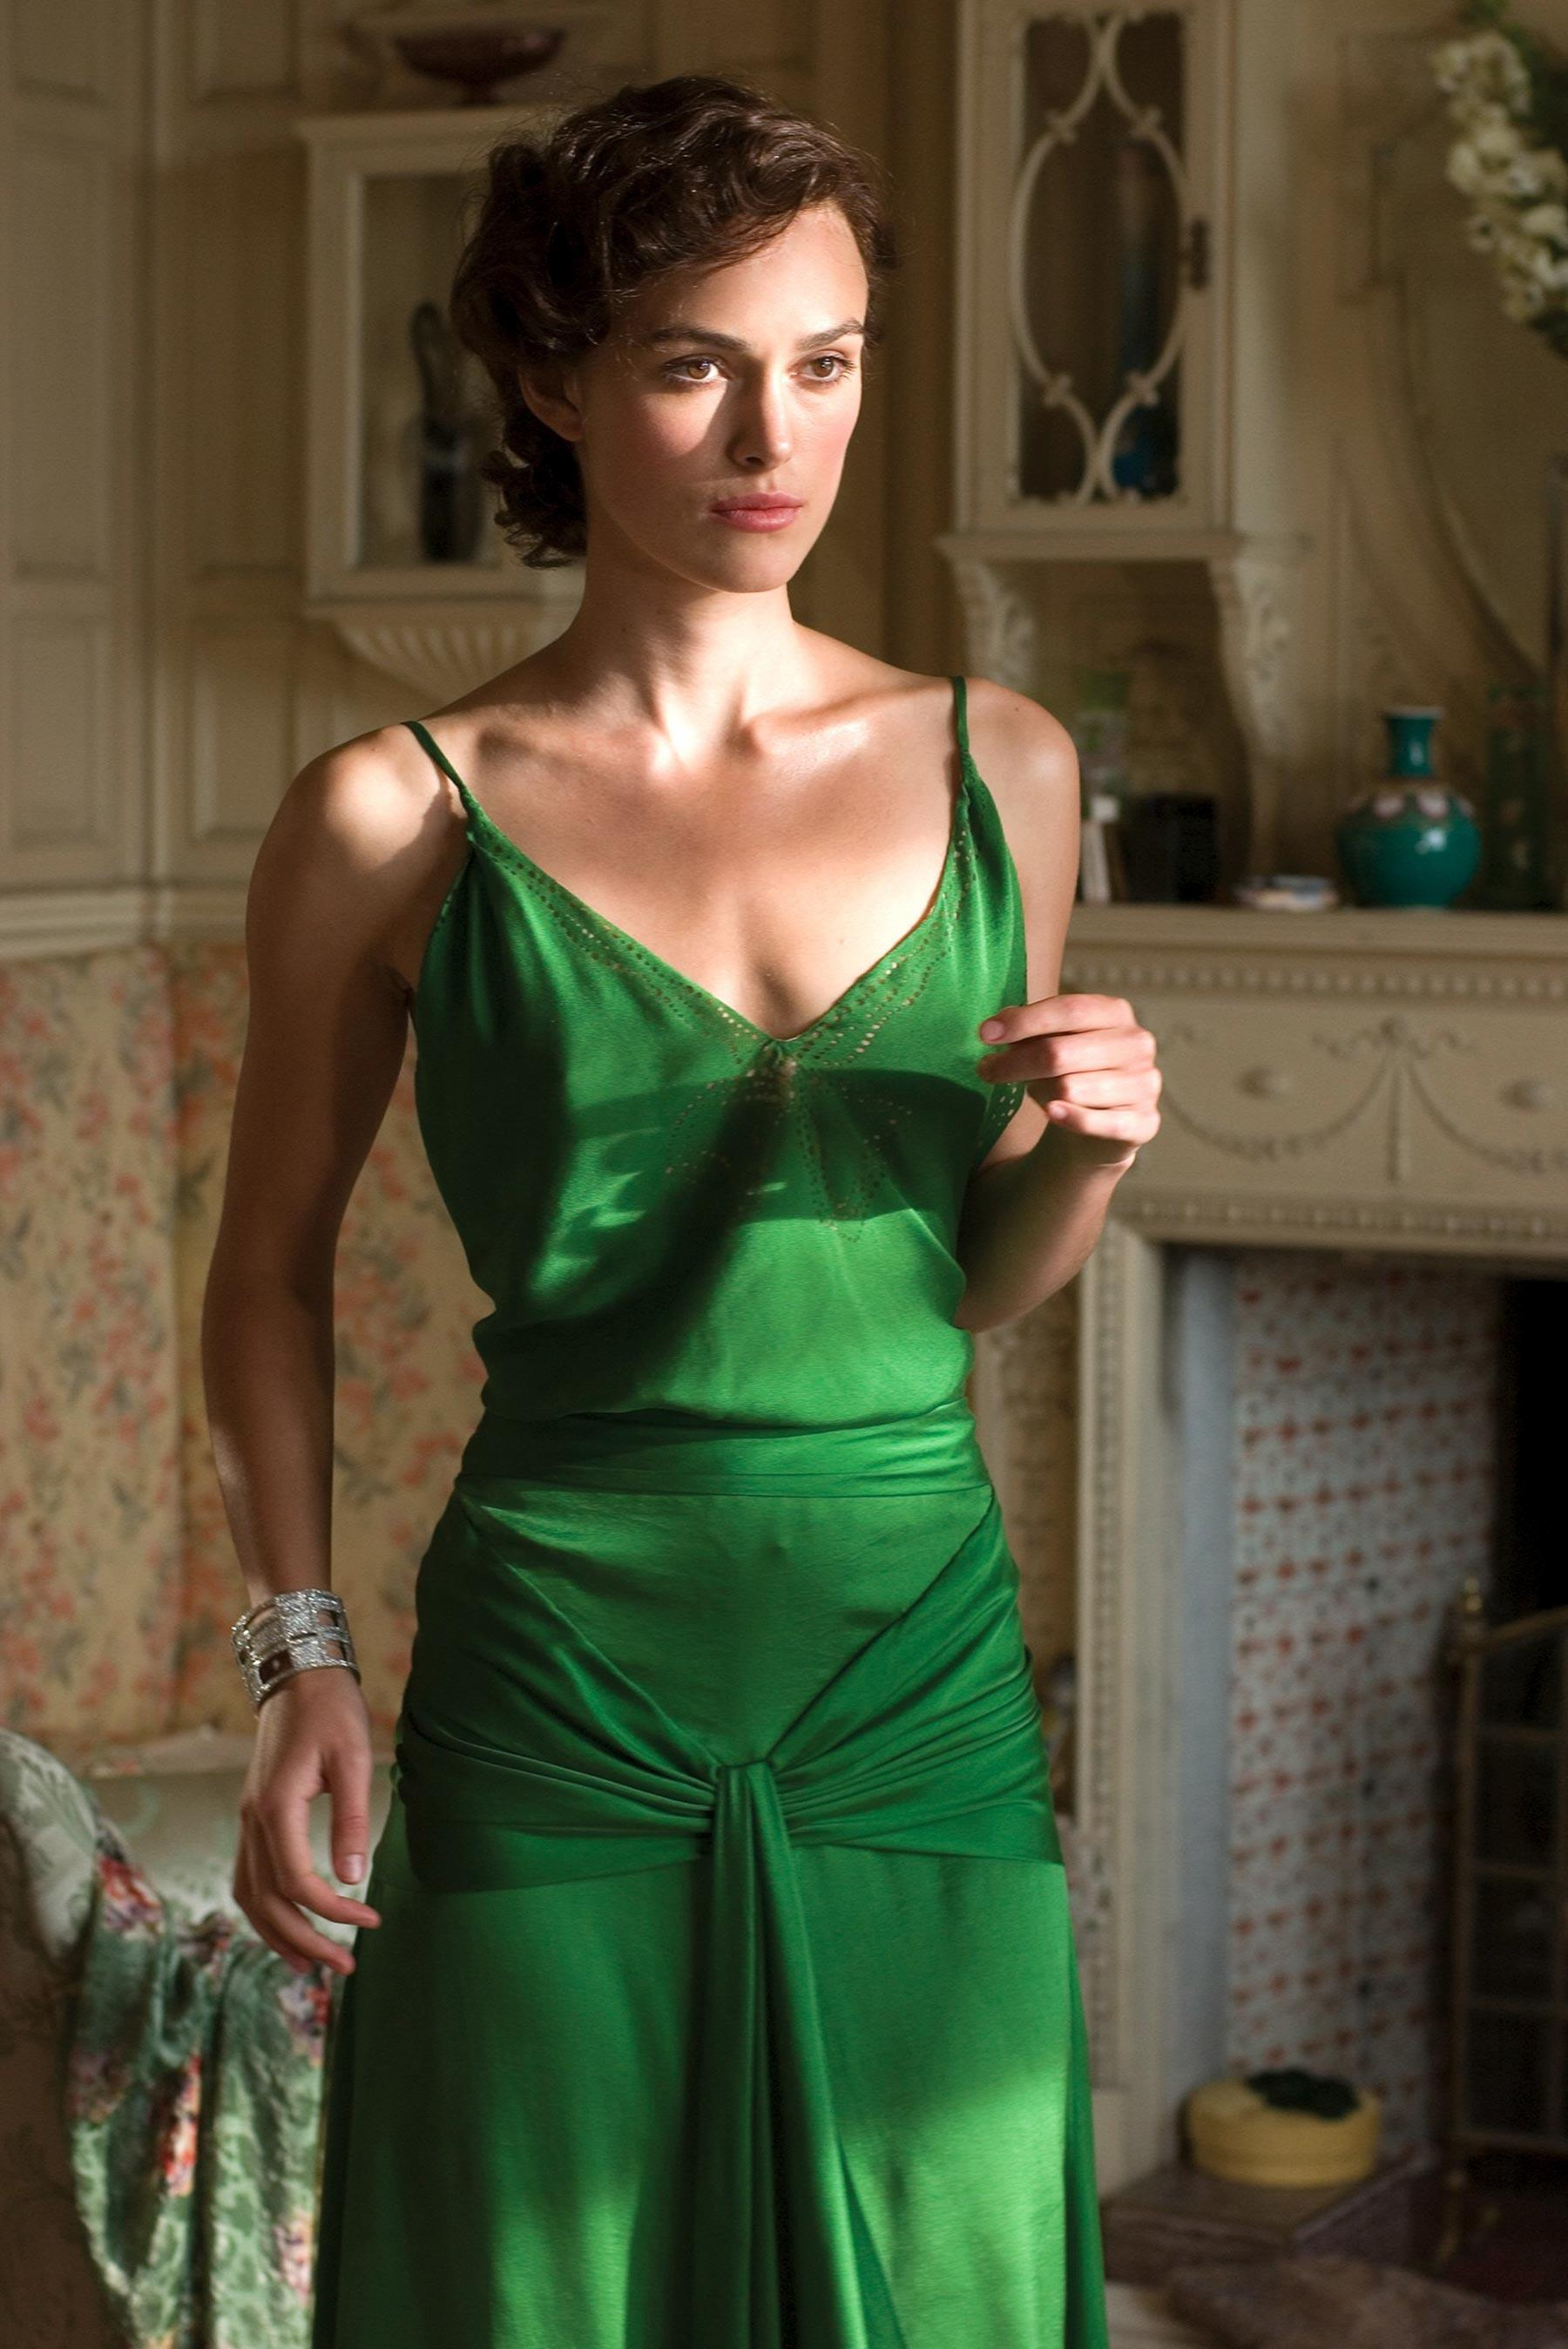 Keira Knightley Says Her Love Scene in Atonement Was the